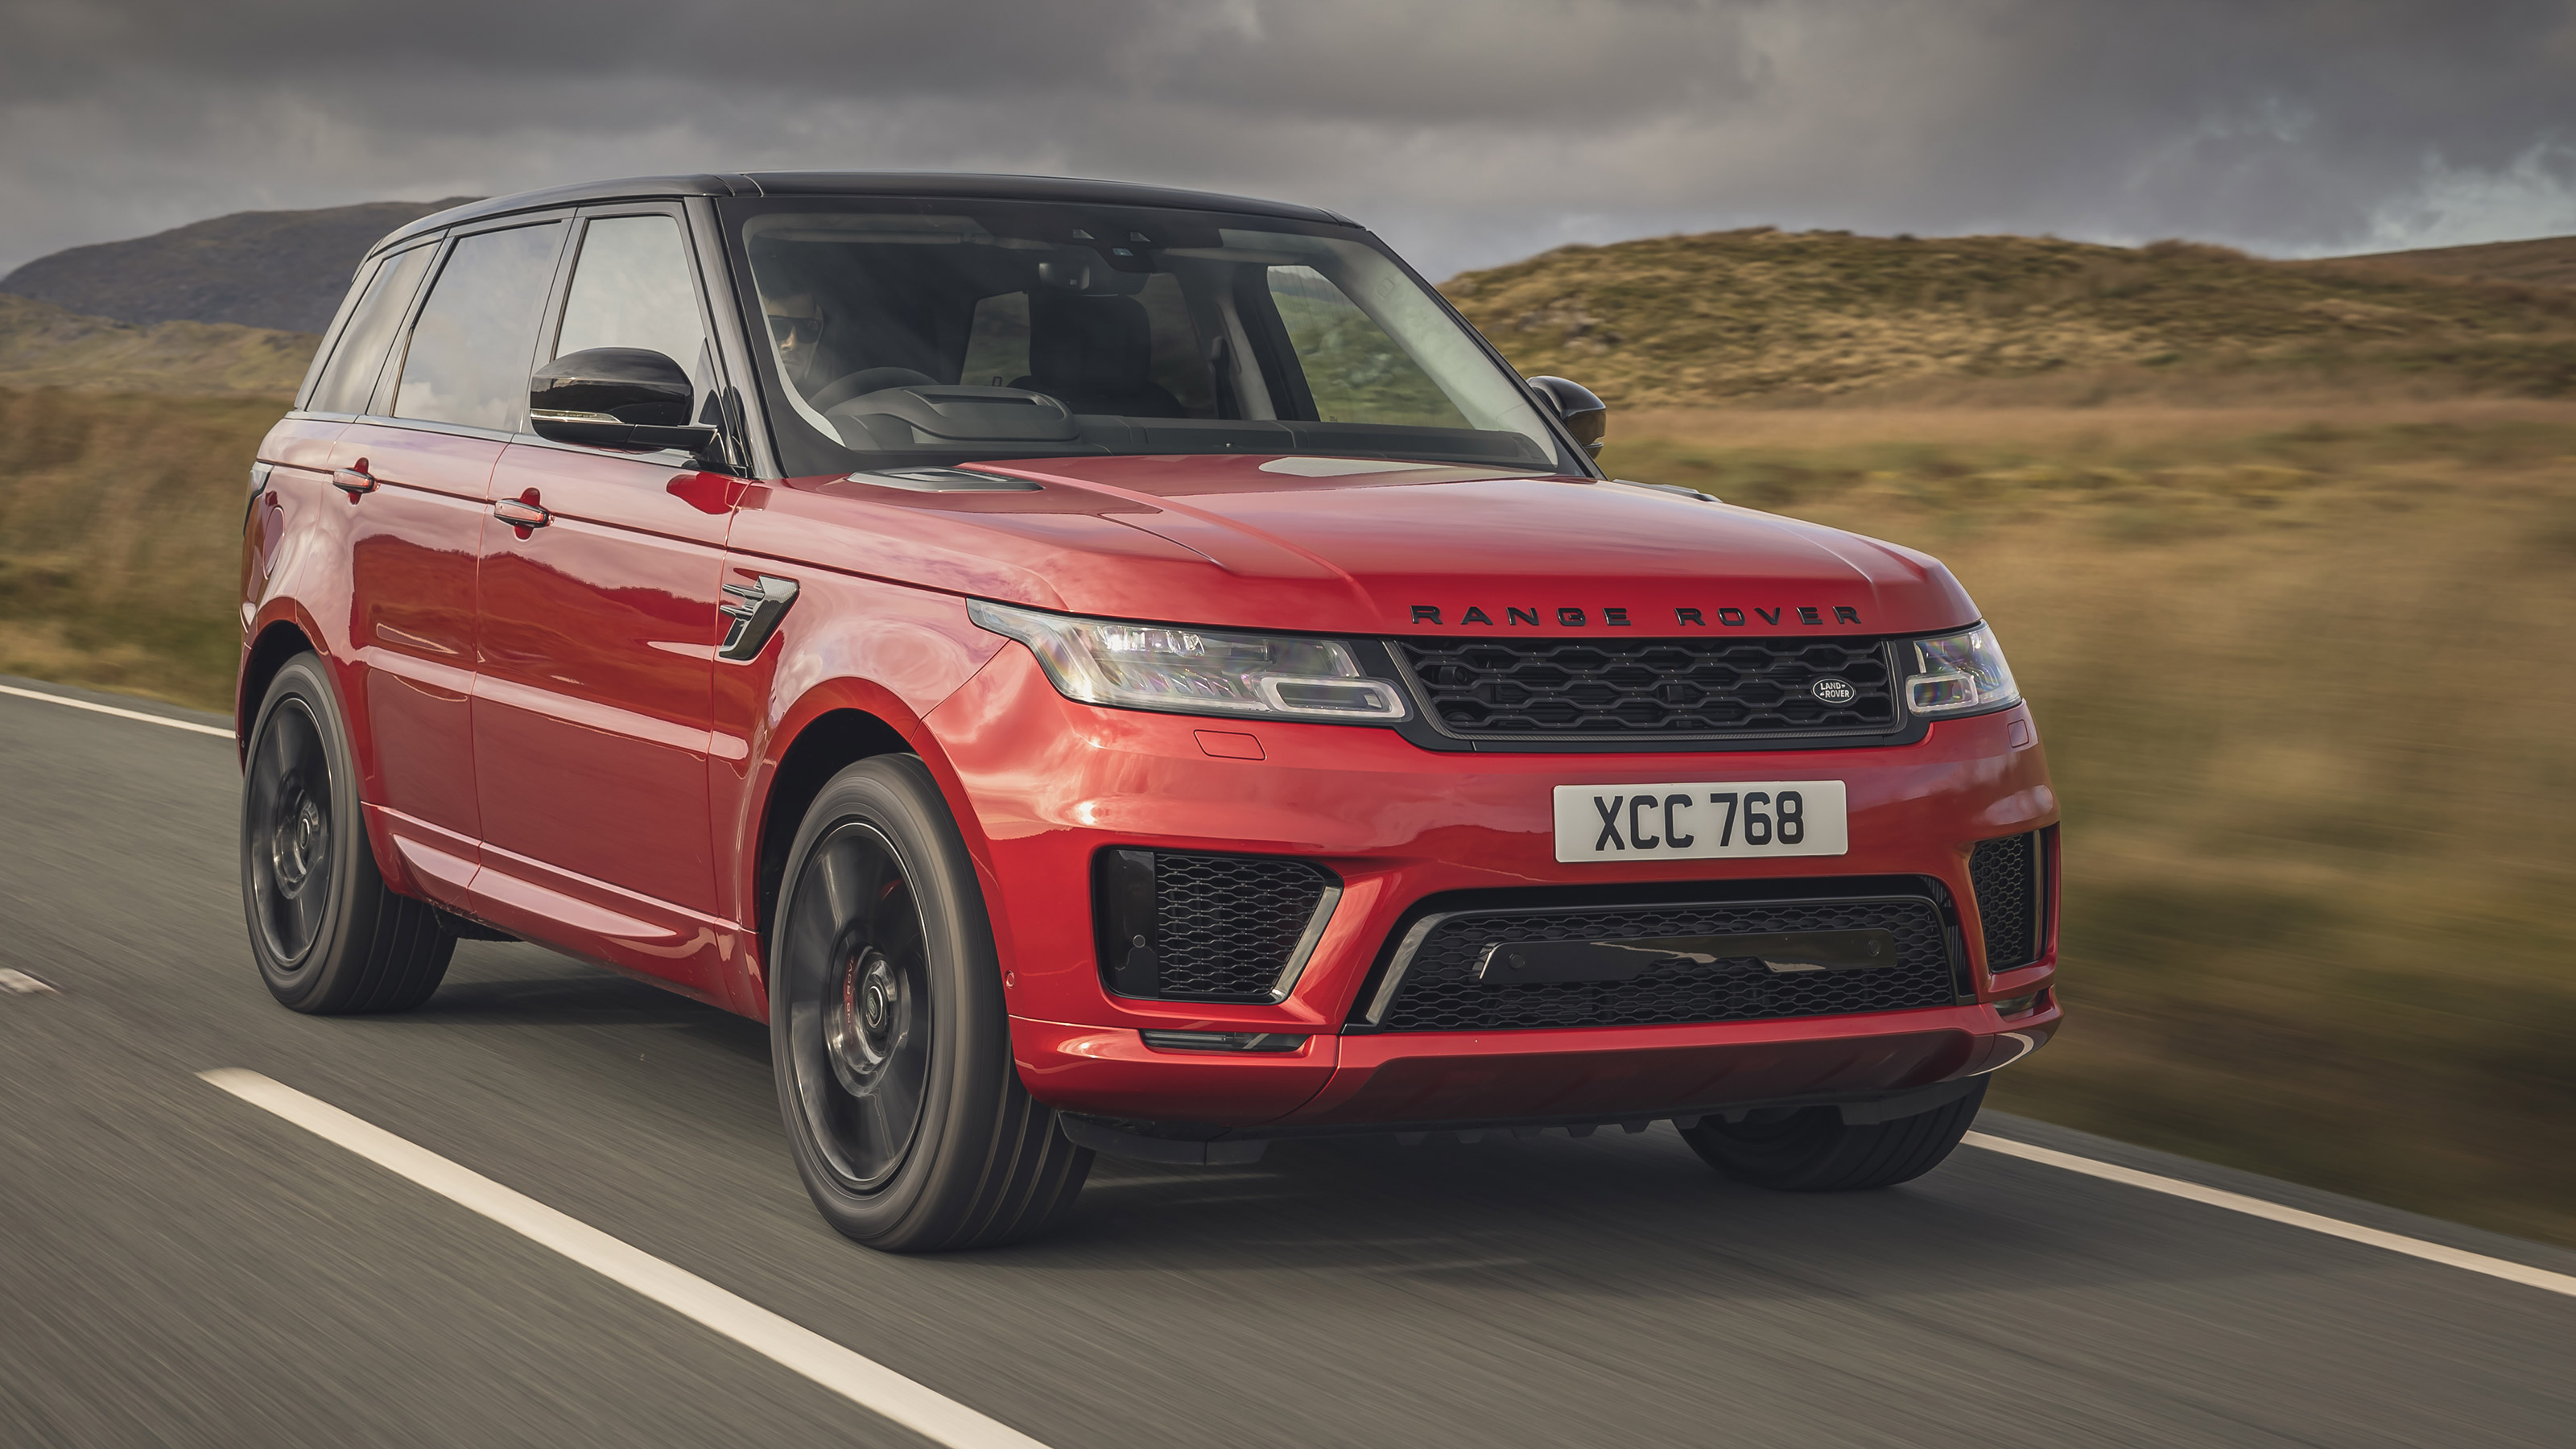 Range Rover Sport Review Prices Specs And 0 60 Time Evo